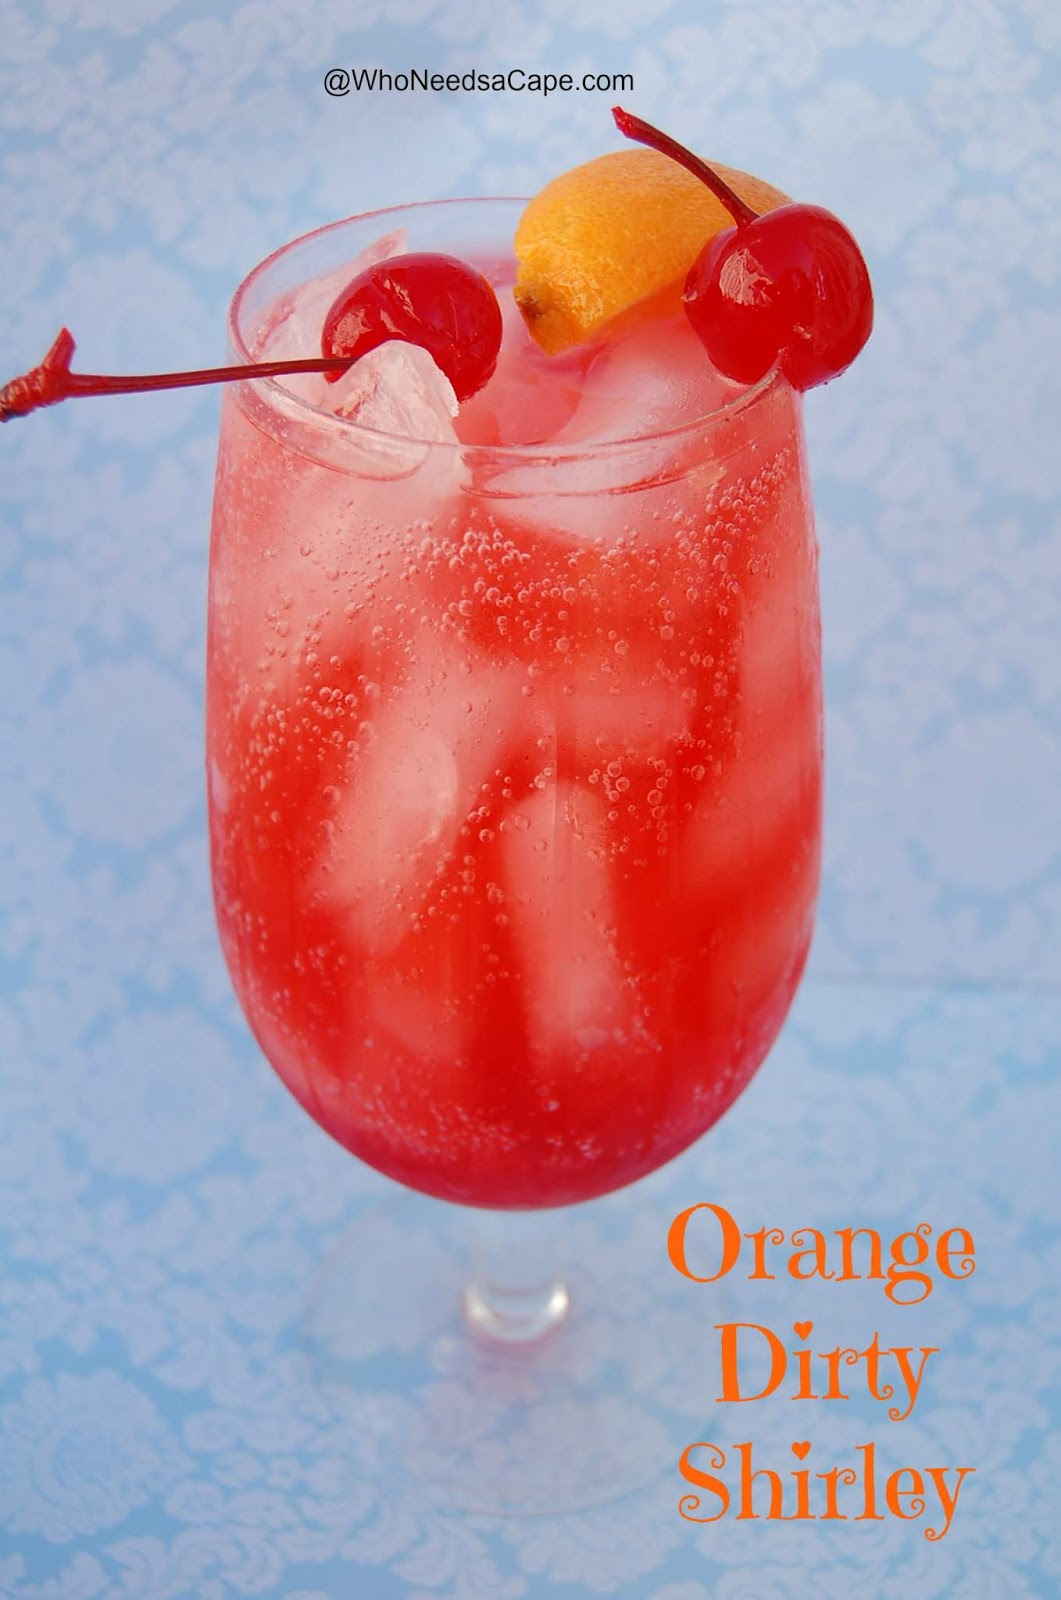 Orange Dirty Shirley #drink #cocktail #margaritas #recipe #yummy